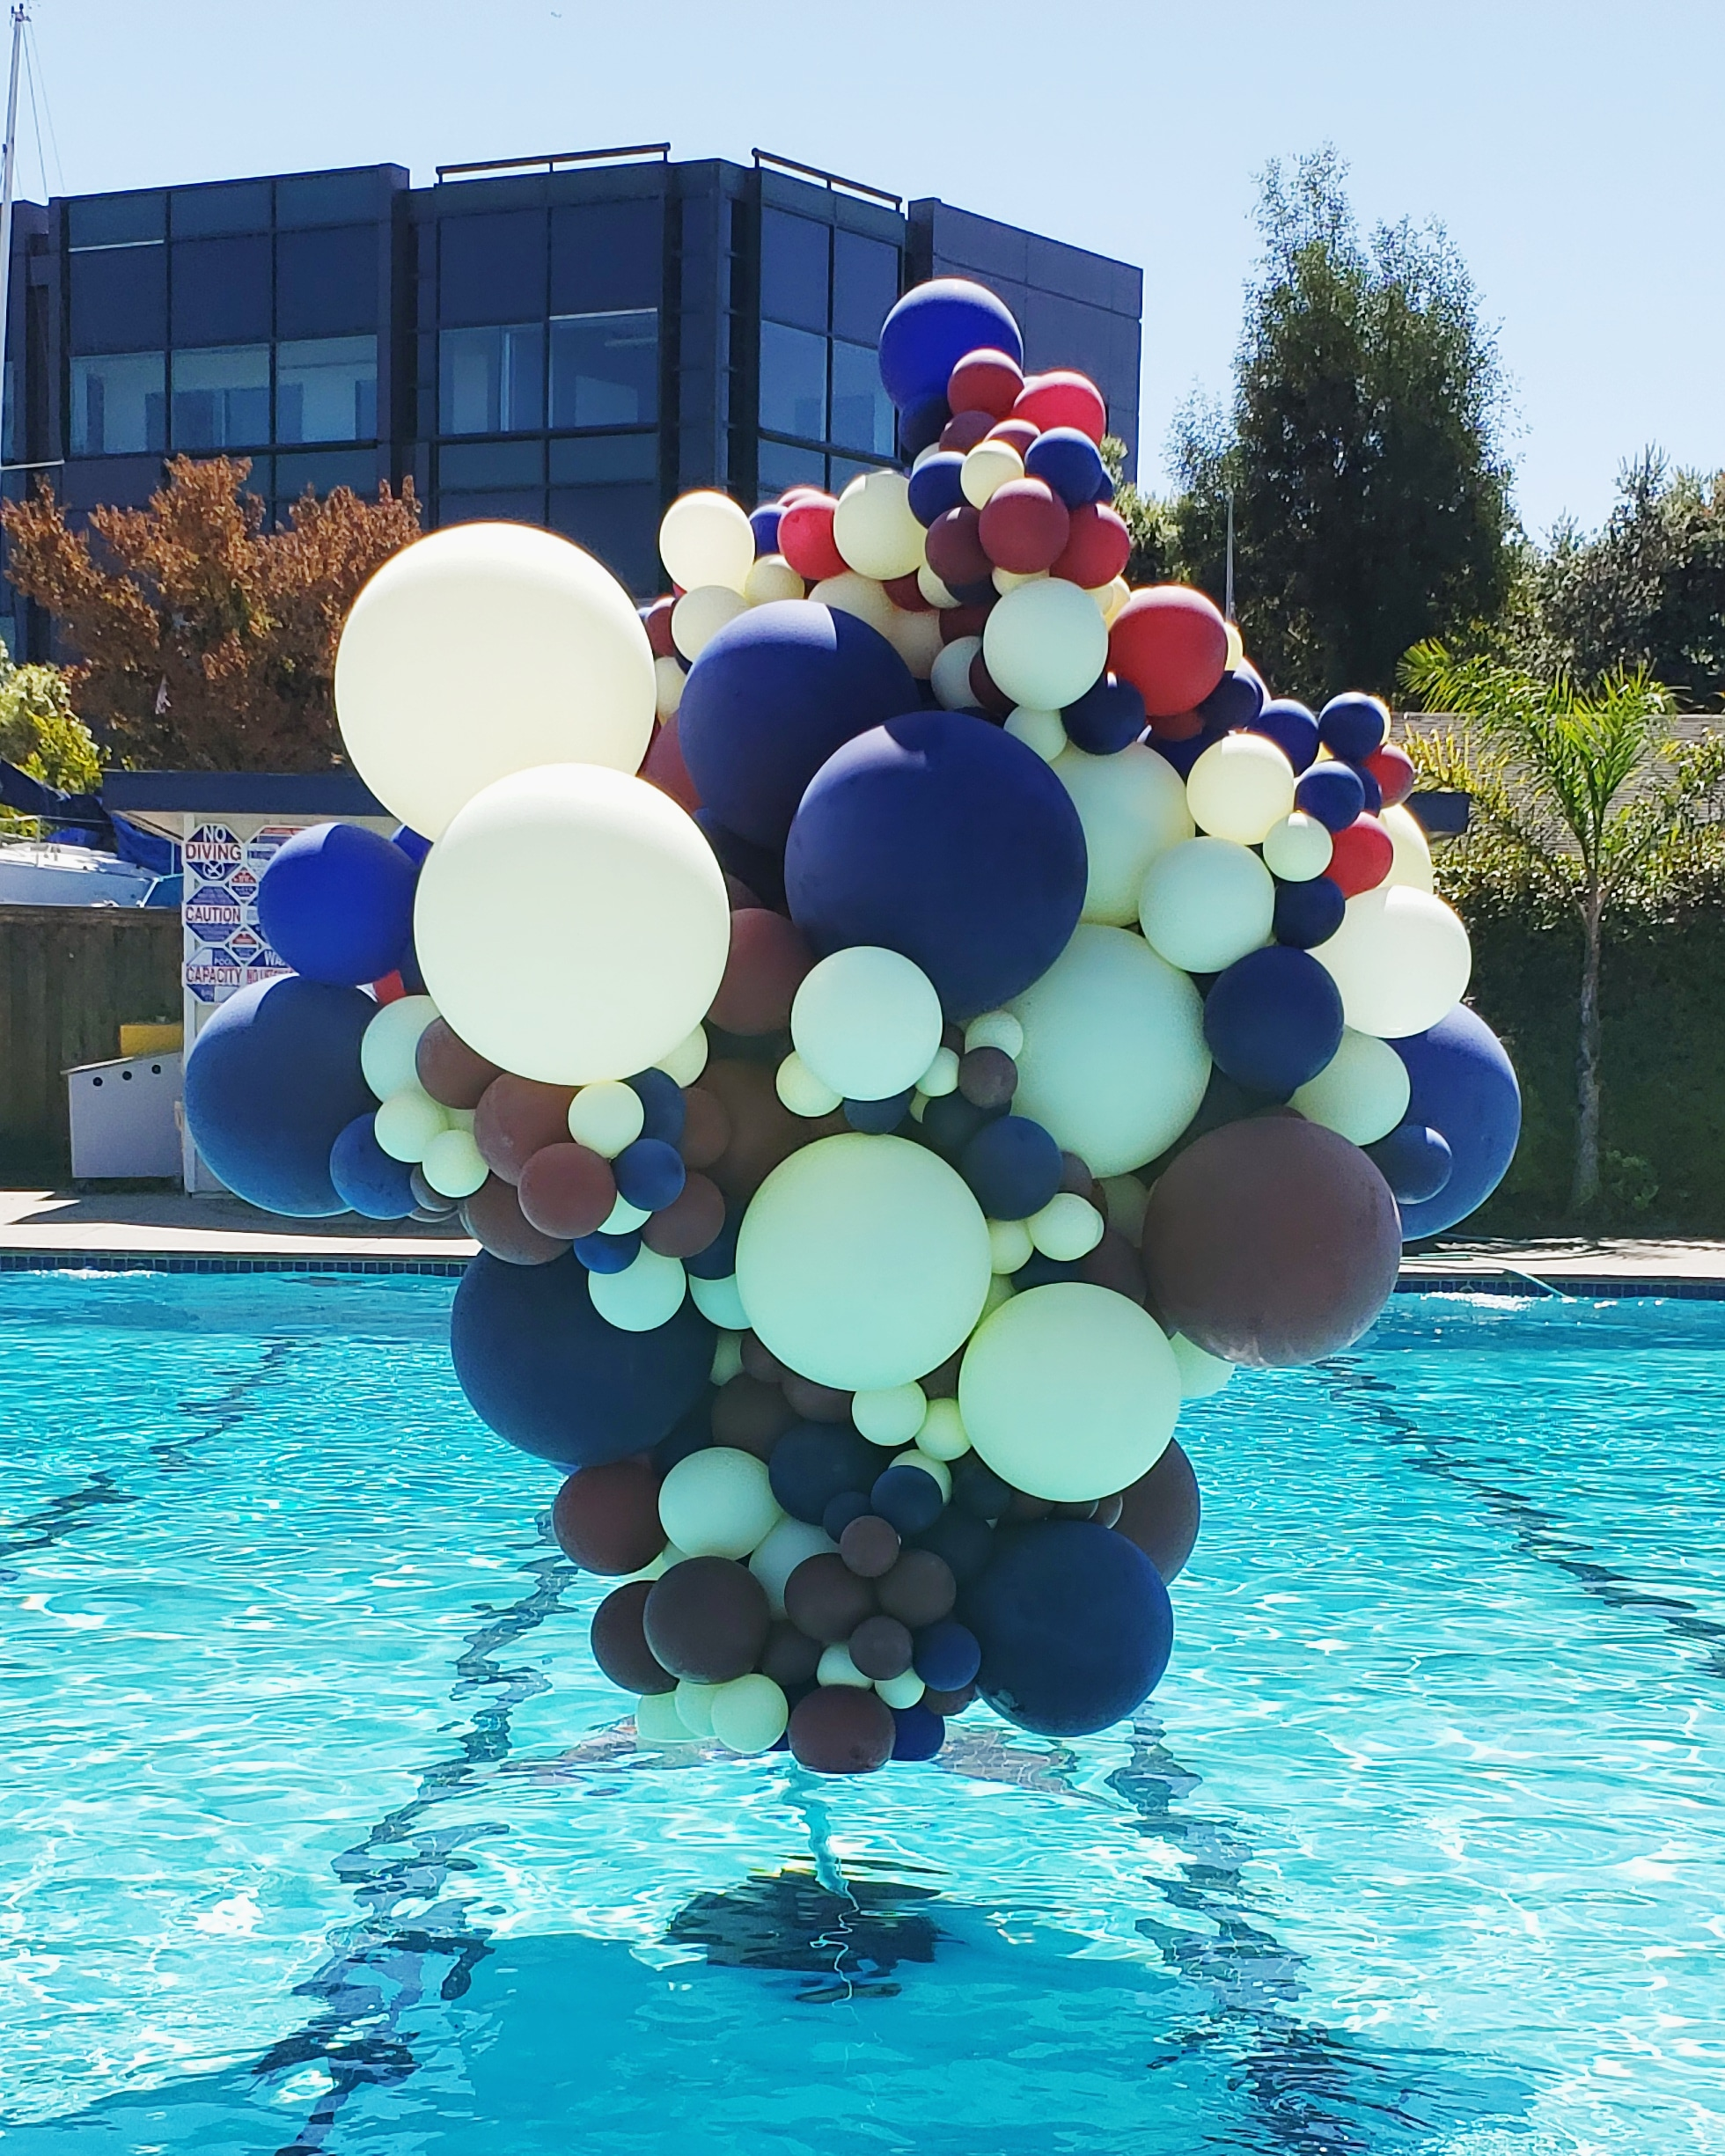 Unique Balloon Installation - Balloons Out Pool Water - Zim Balloons.jpg